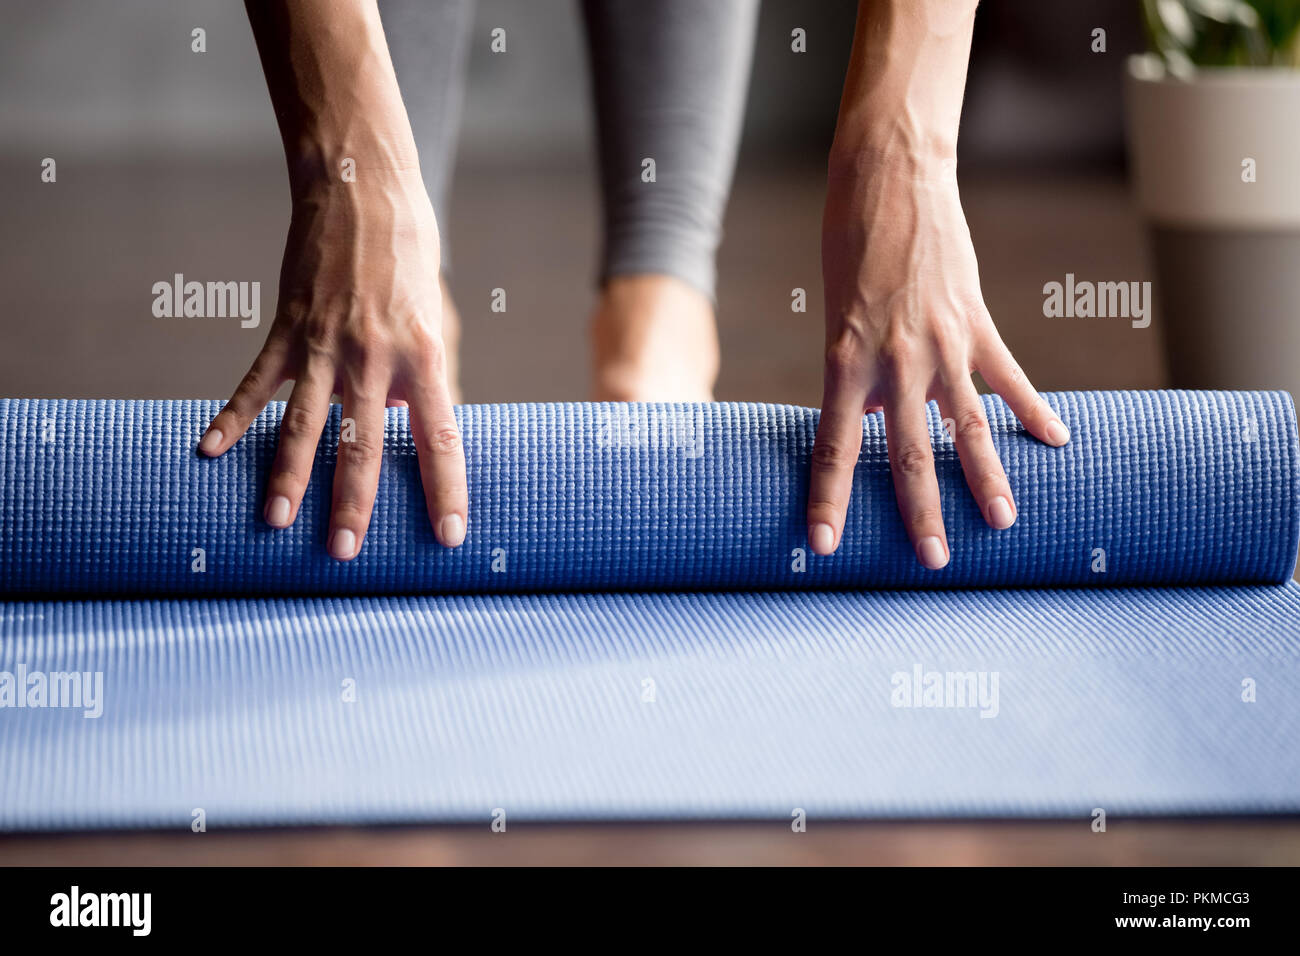 Girls hand folding blue exercise mat on the floor - Stock Image